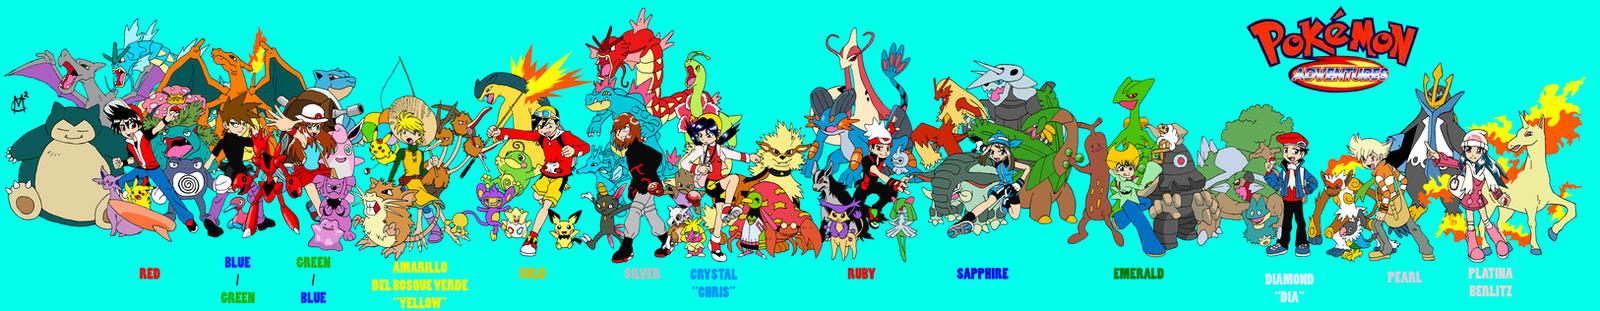 quot;Pokemon Adventuresquot; cast by EmSeeSquared on DeviantArt